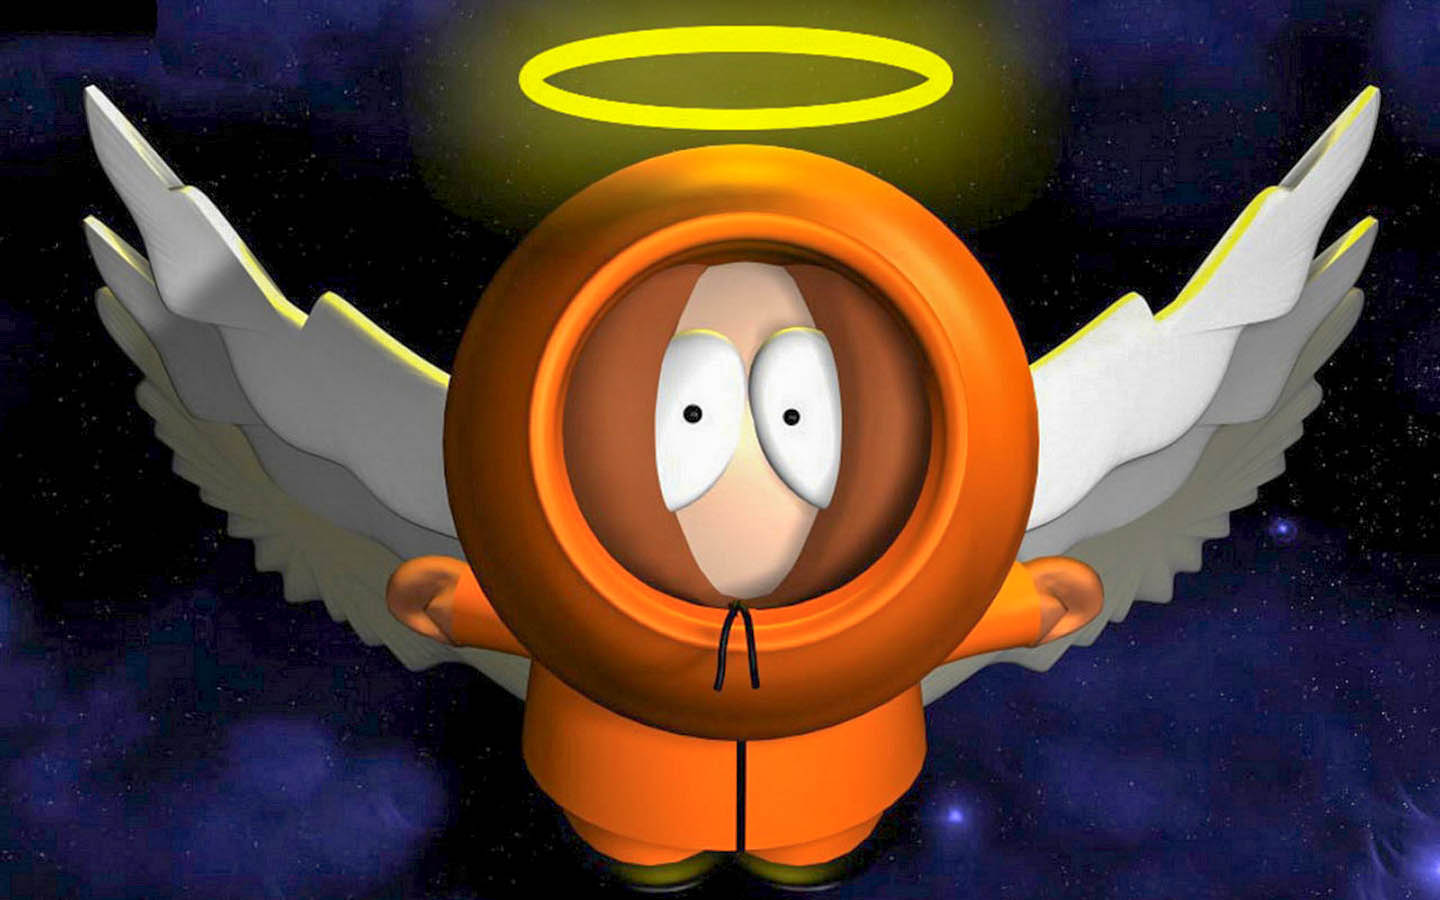 South Park Amazing High Resolution HD Wallpapers - All HD ...